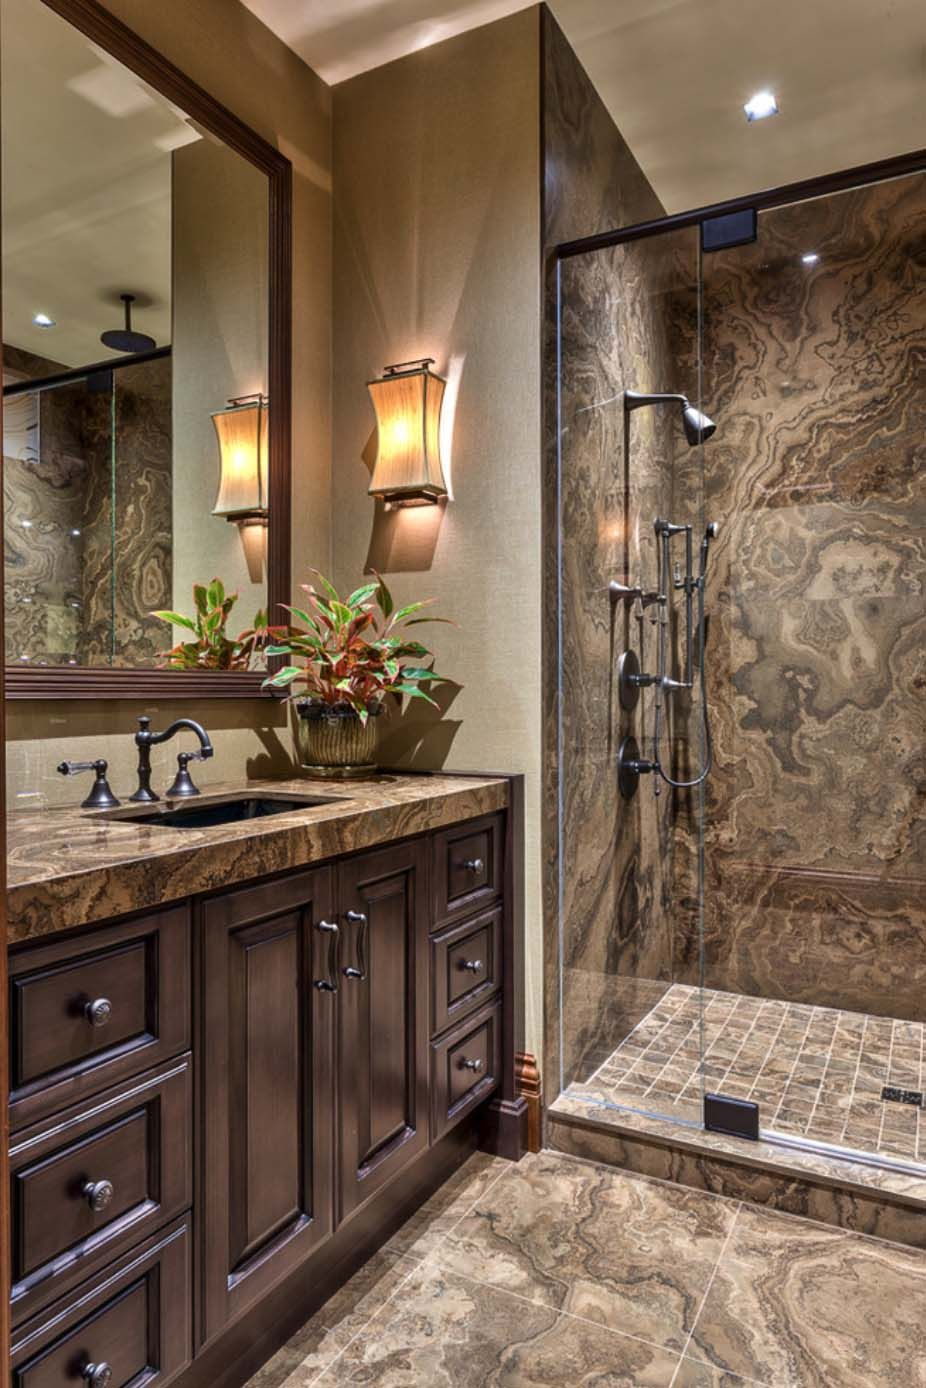 Gentil In The Mountains Of North Carolina Is This Eye Catching Mountain Resort  Bathroom. Features Include Custom Designed Cabinetry In A A Grey Wood Stain  With ...